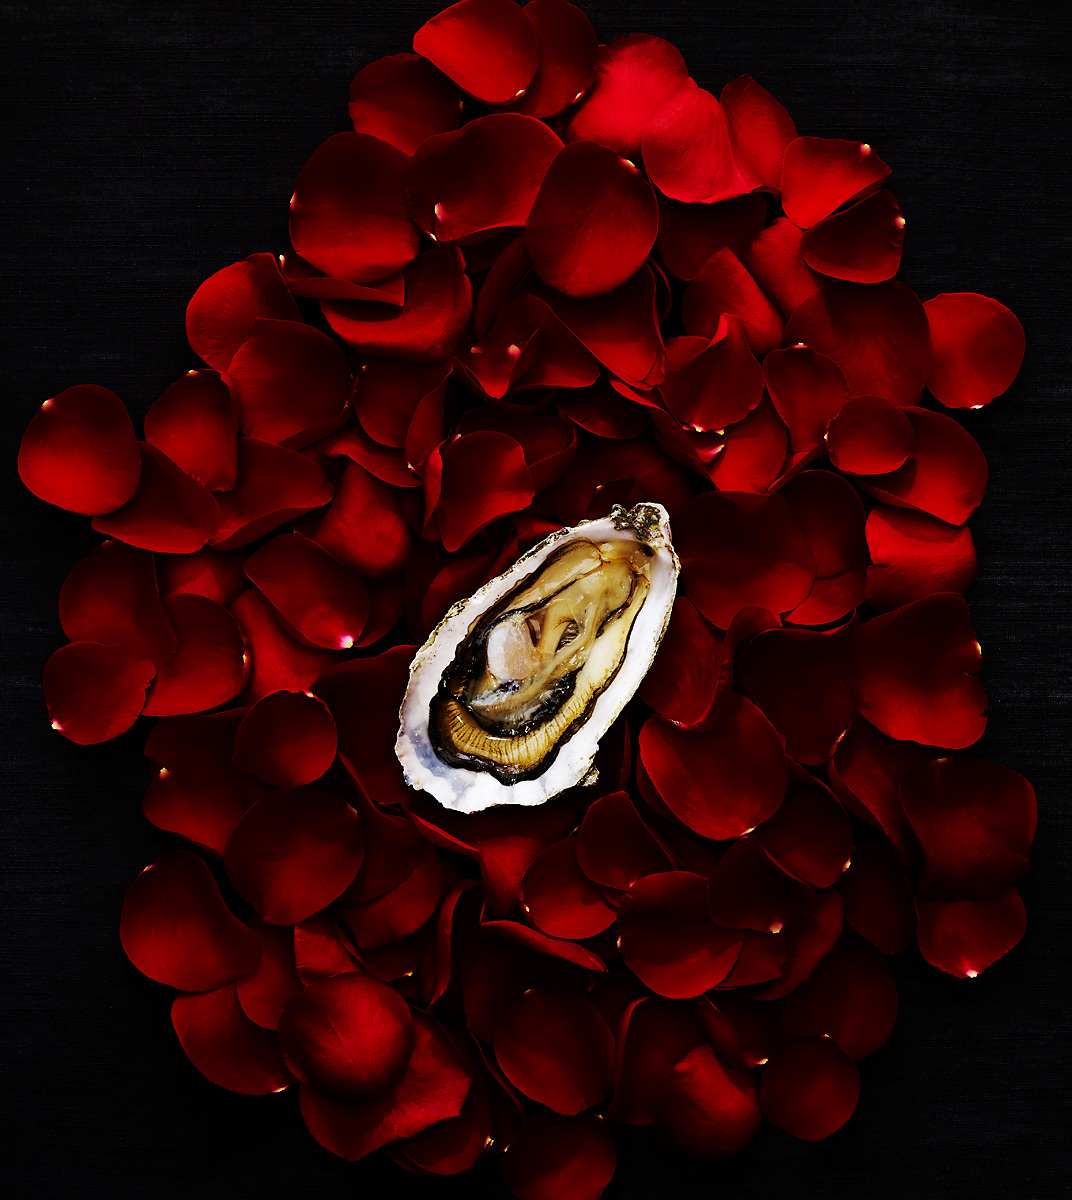 More_OysterRoses_W_APF.jpg